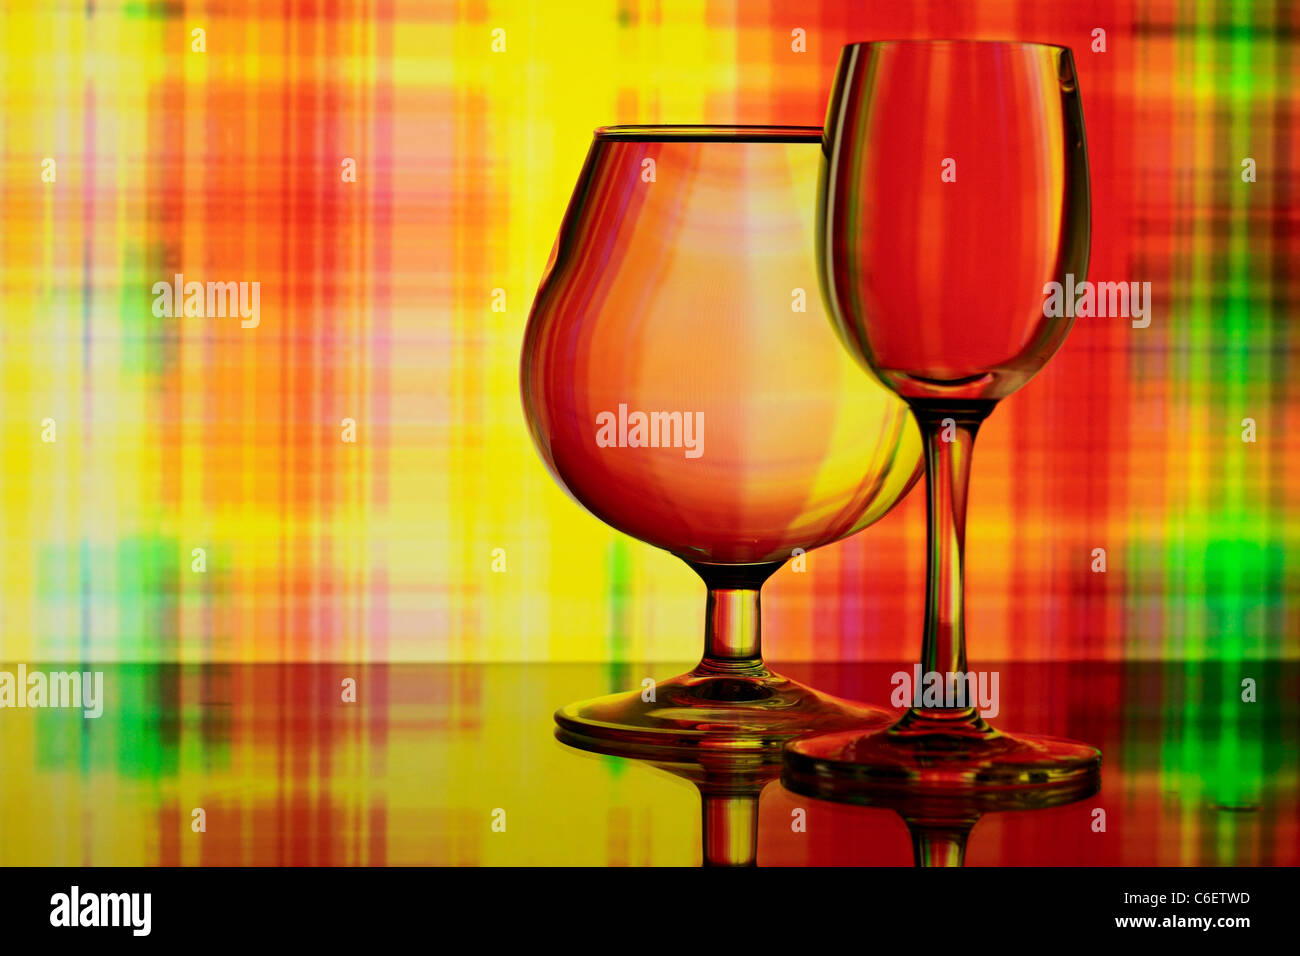 Two glasses on colorful abstract background Stock Photo